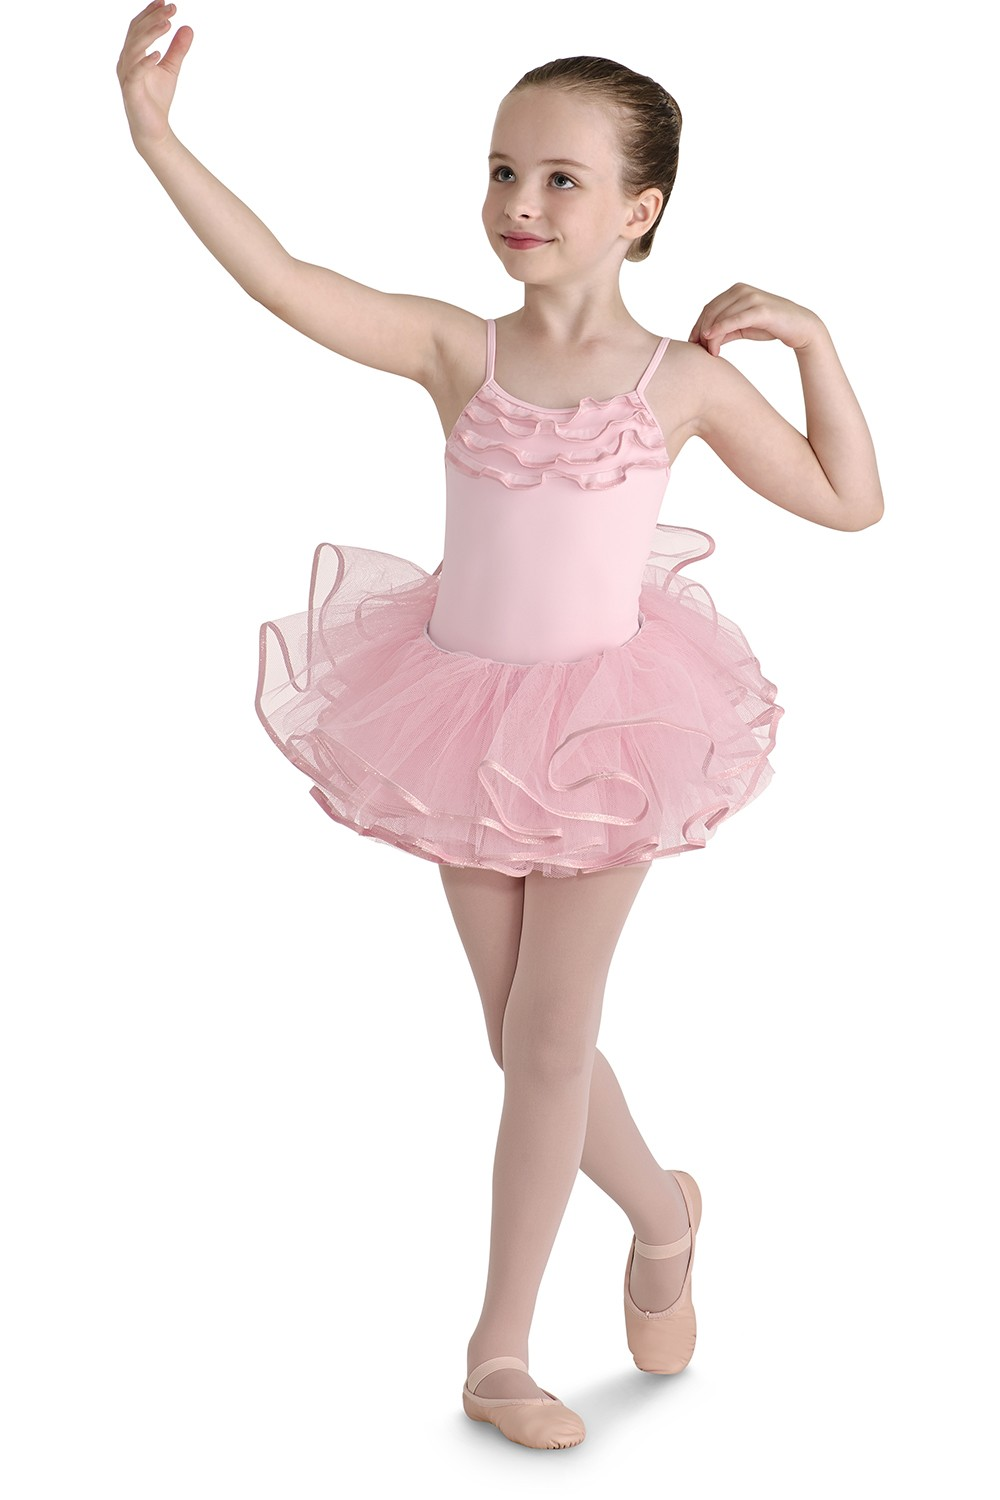 Glitterdust Tutu Children's Dance Leotards